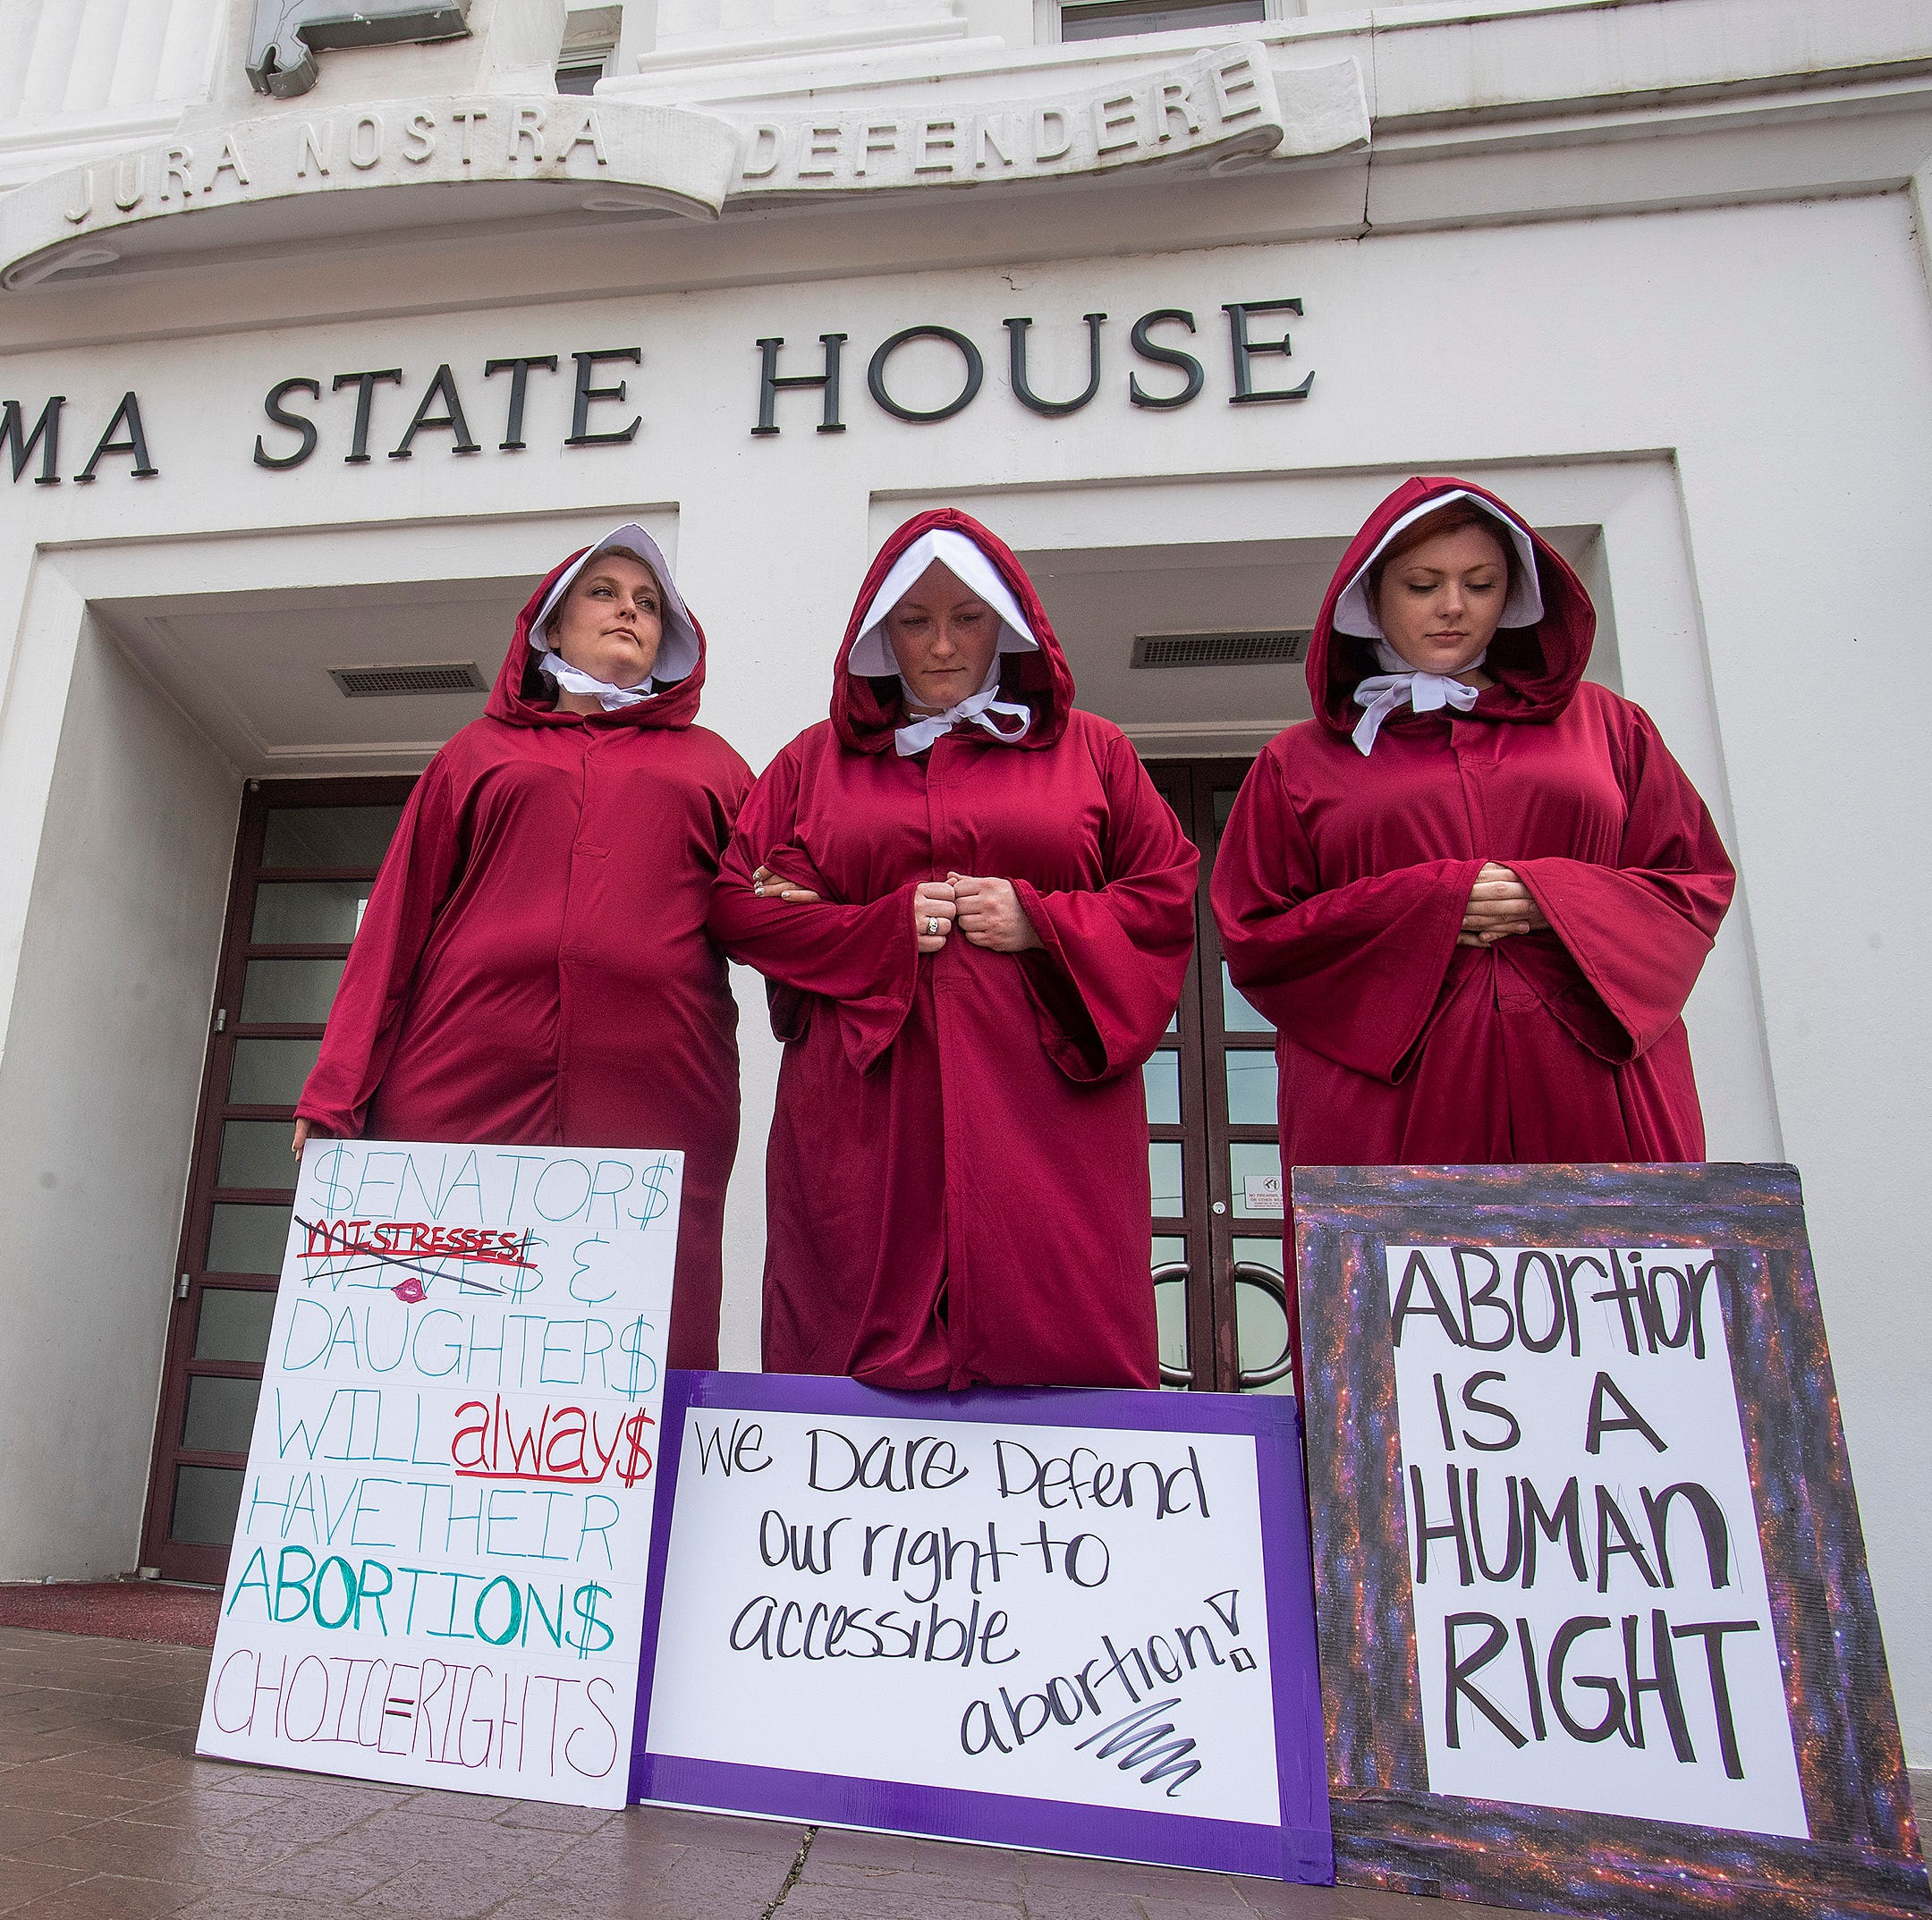 Could Arizona become the next Alabama on abortion?